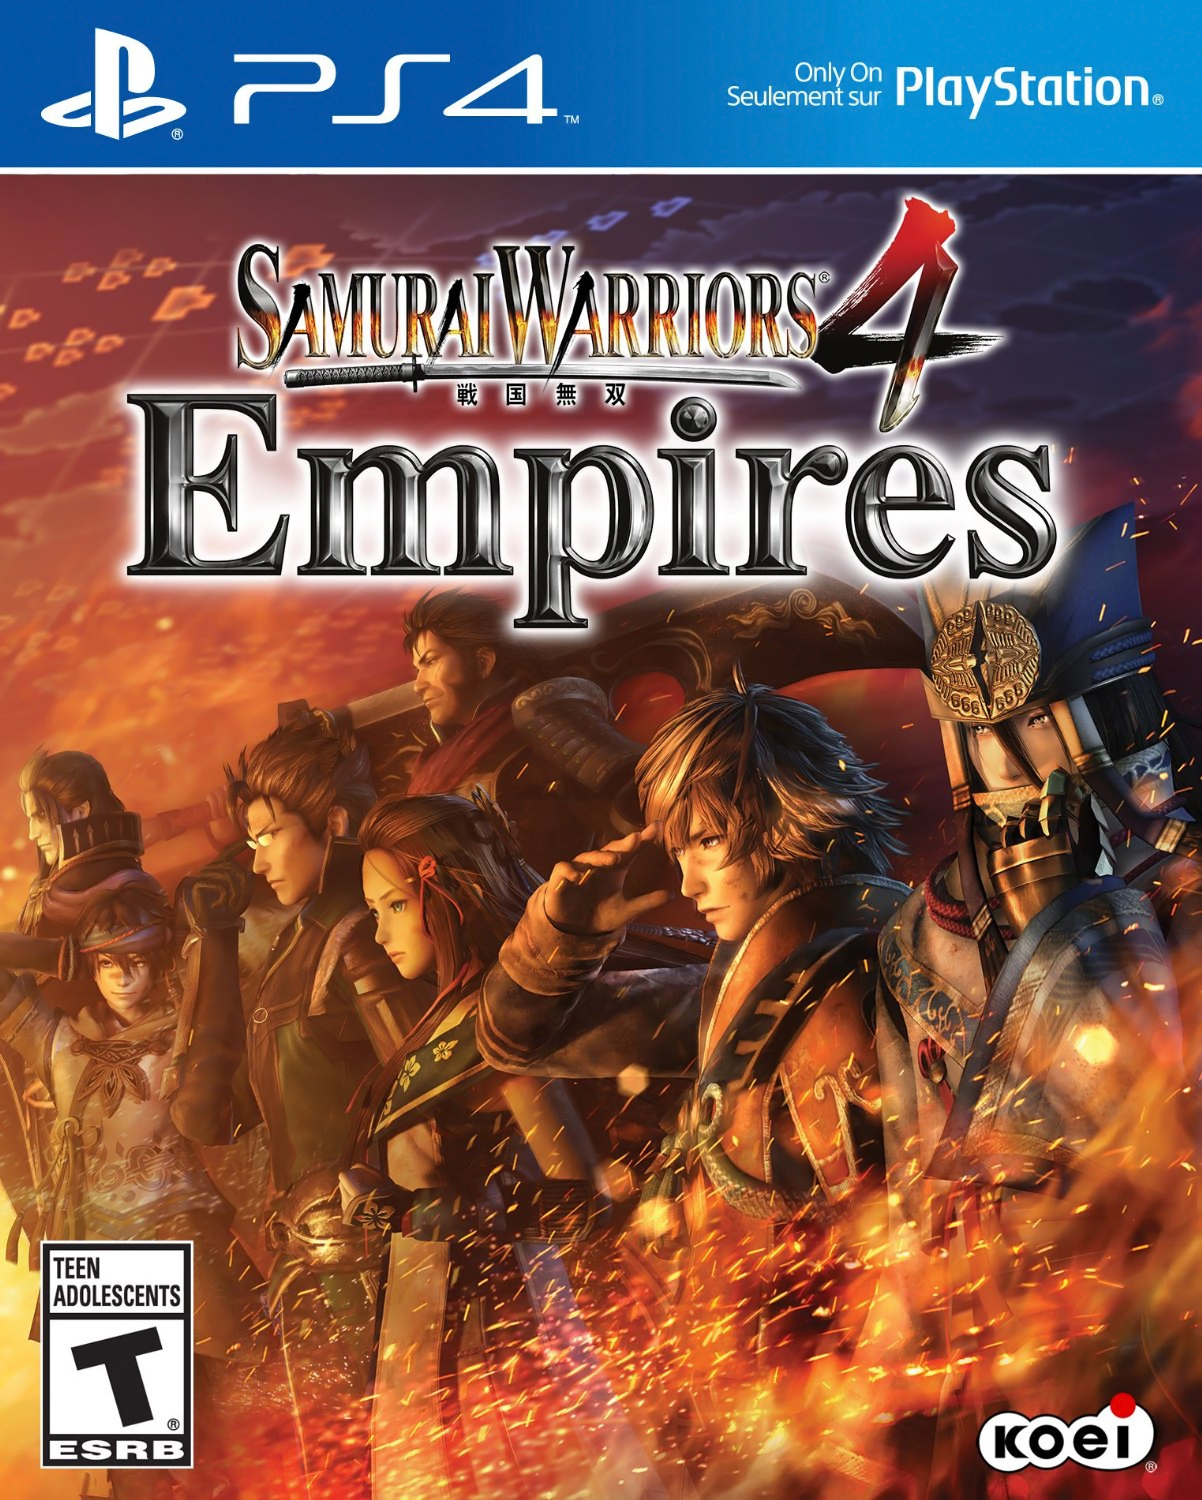 Samurai Warriors 4: Empires | Koei Wiki | FANDOM powered by